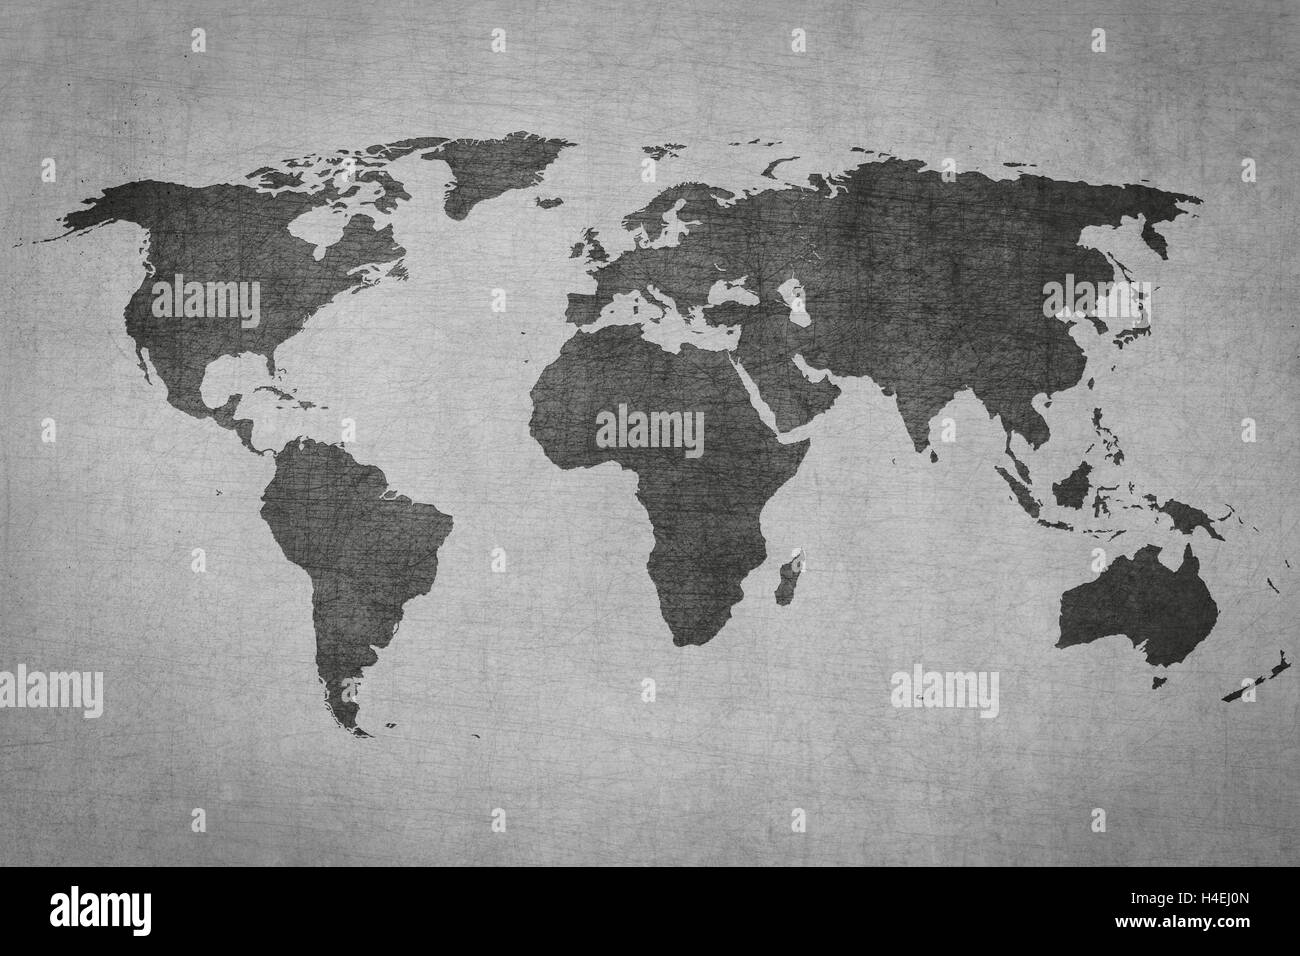 Pen world travel stock photos pen world travel stock images alamy textured vintage world map on grey grungy background stock image gumiabroncs Images